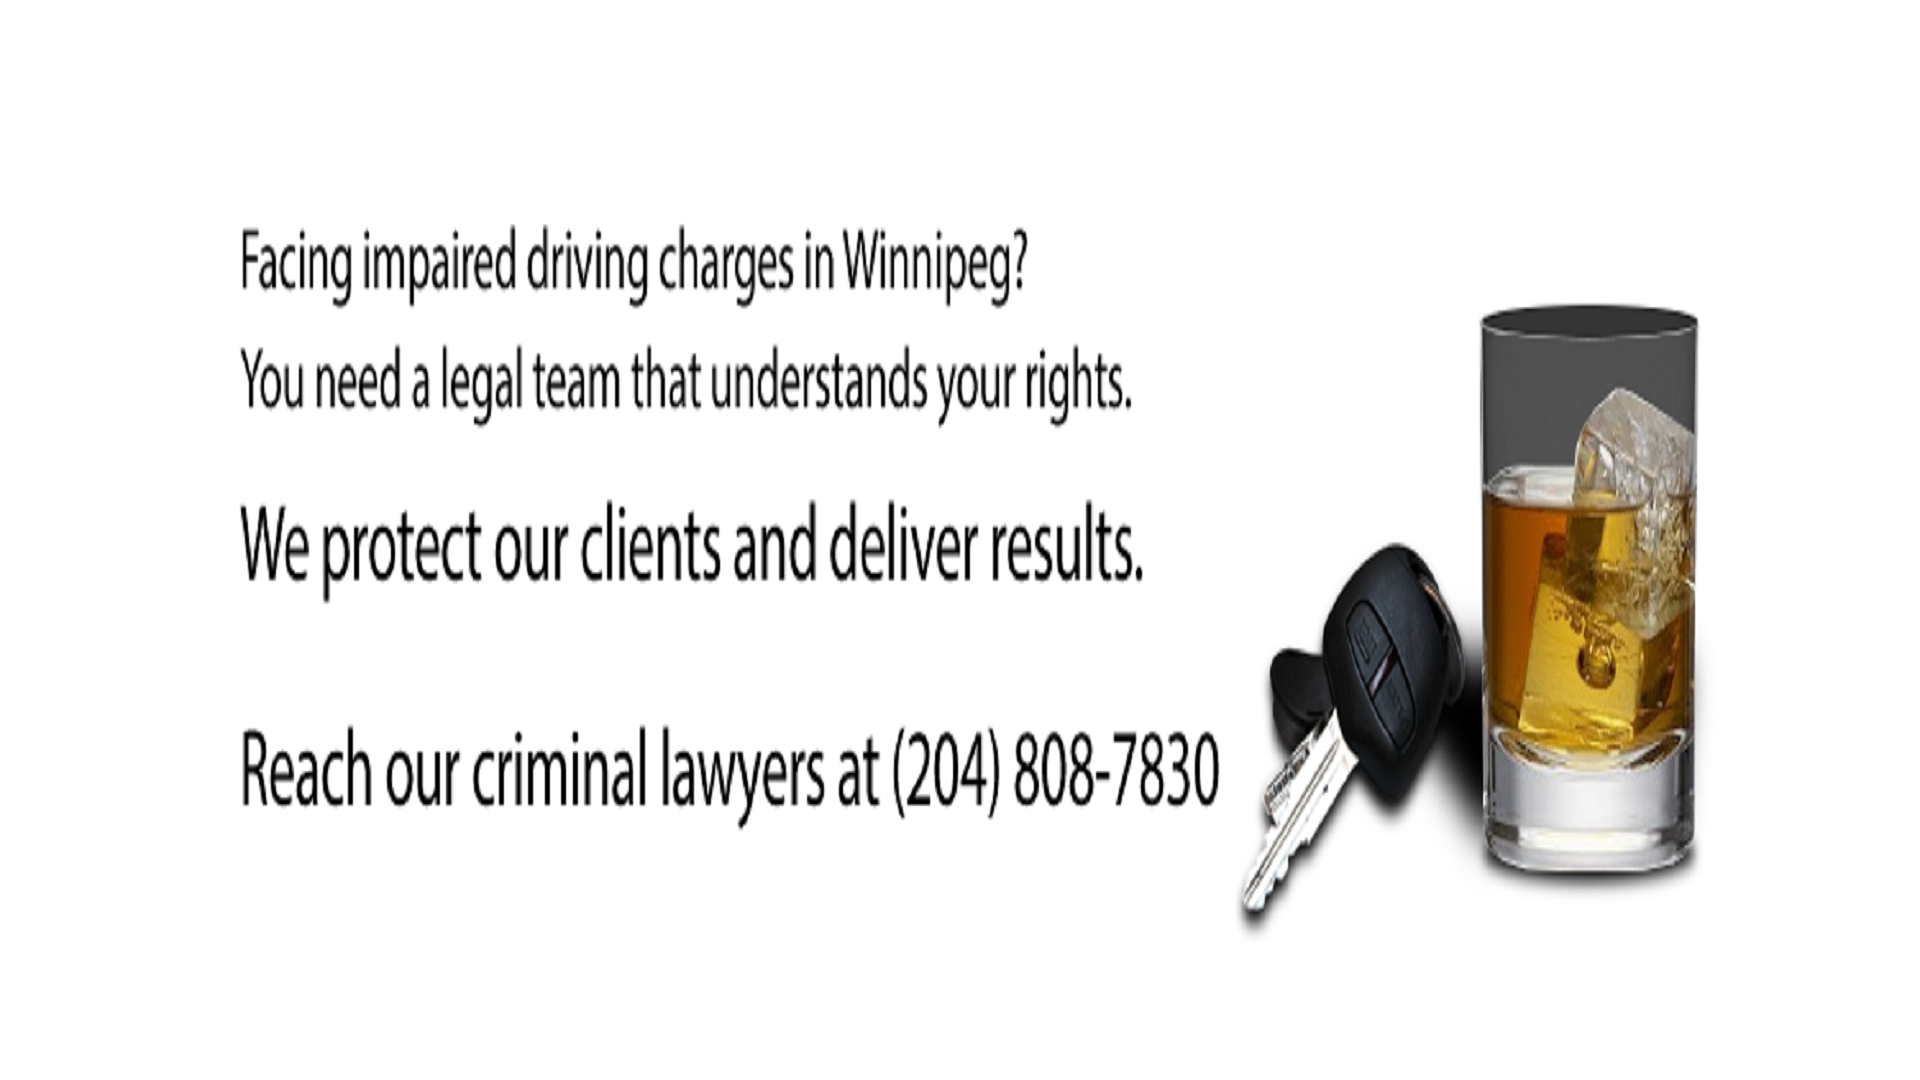 Are You Looking For Professional Criminal Defense Lawyers In